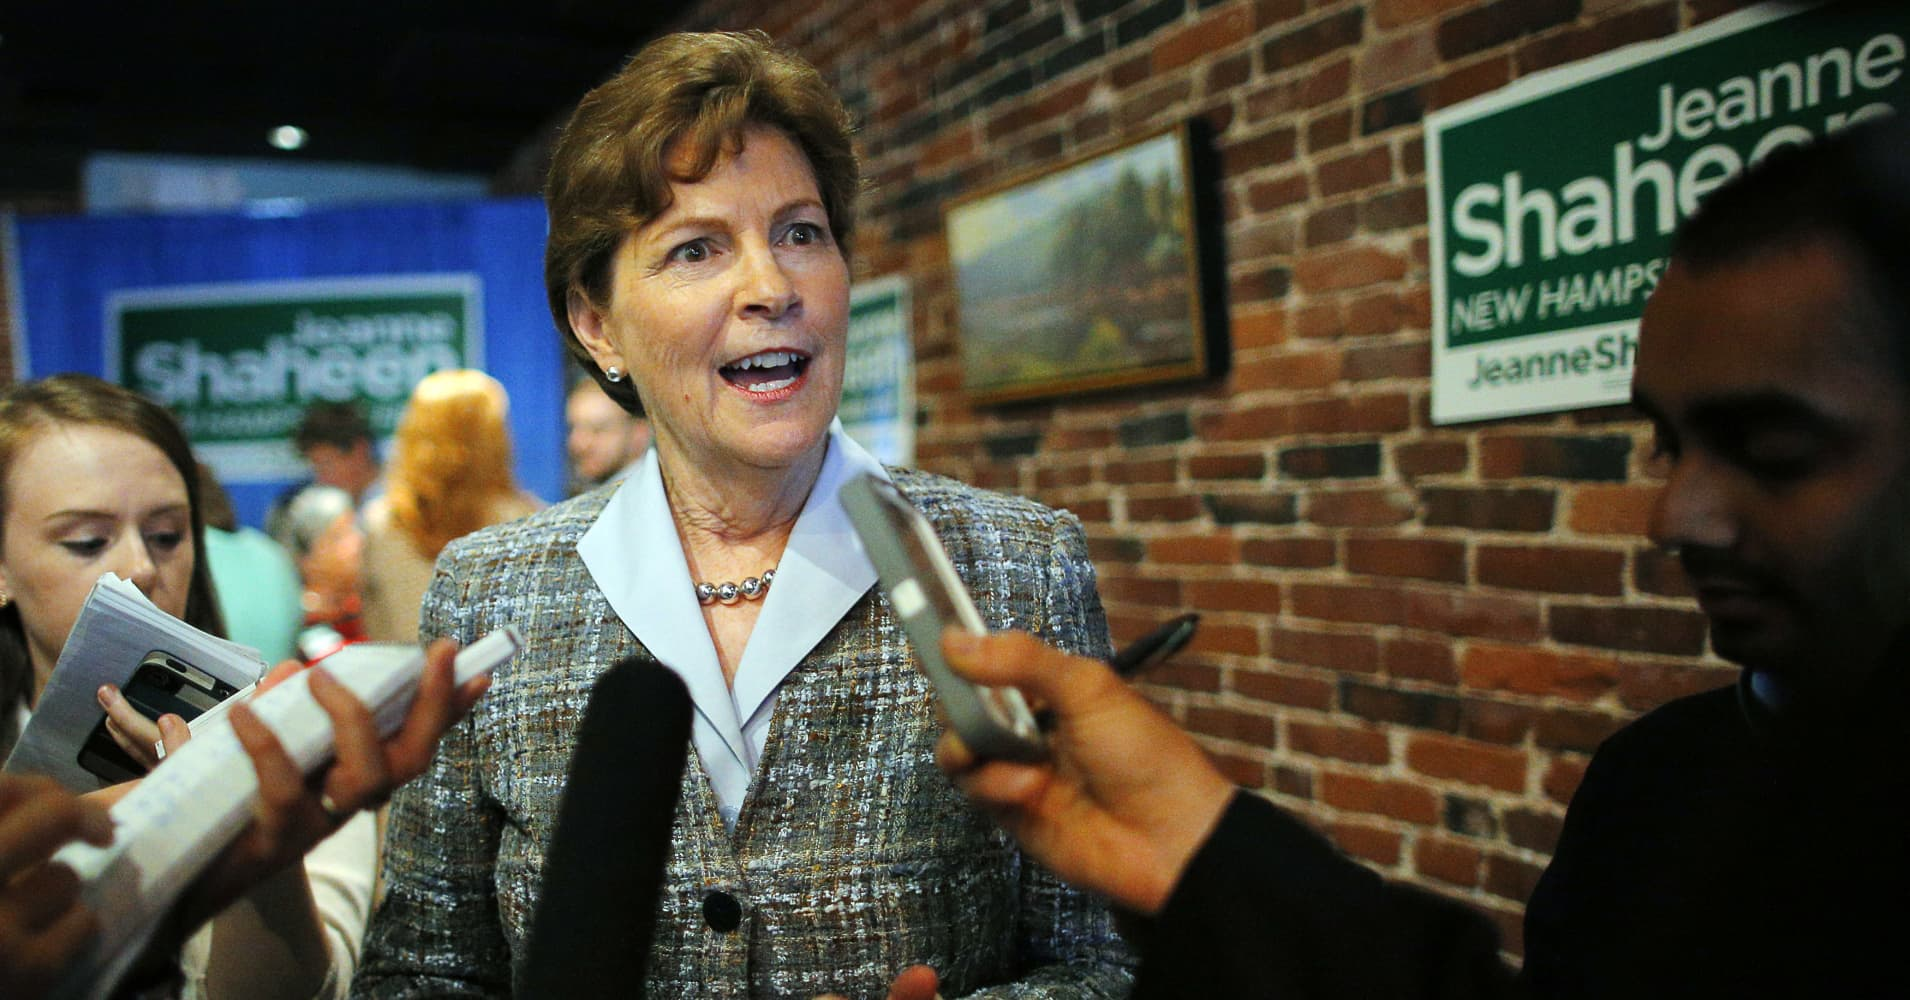 U.S. Senator Jeanne Shaheen (D-NH) speaks to reporters at a campaign stop at the Firefly American Bistro in Manchester, New Hampshire September 29, 2014.